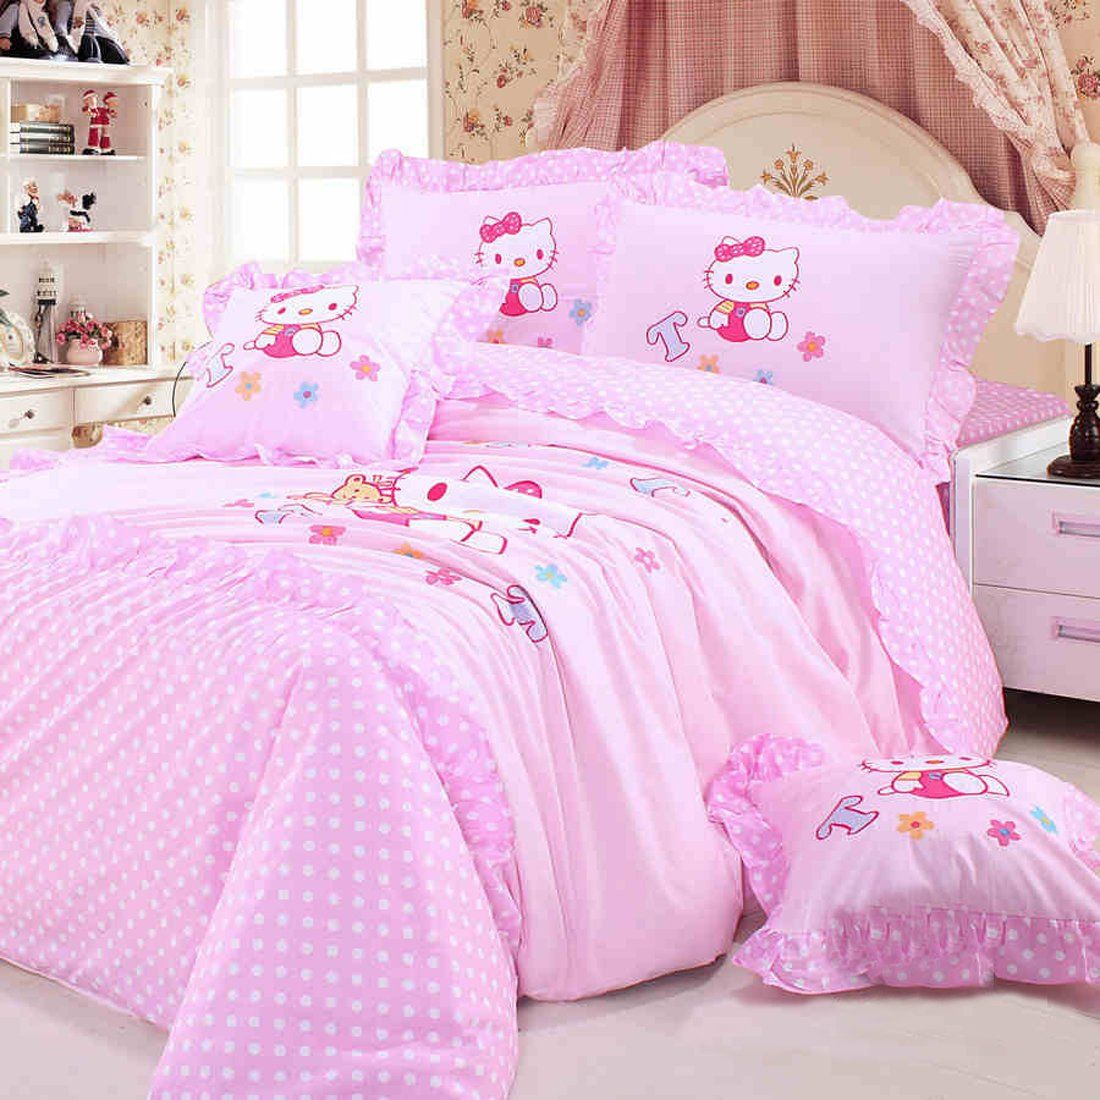 Twin Princess Bedding Set Hello Kitty Bed Hello Kitty Bedroom Princess Bedding Set